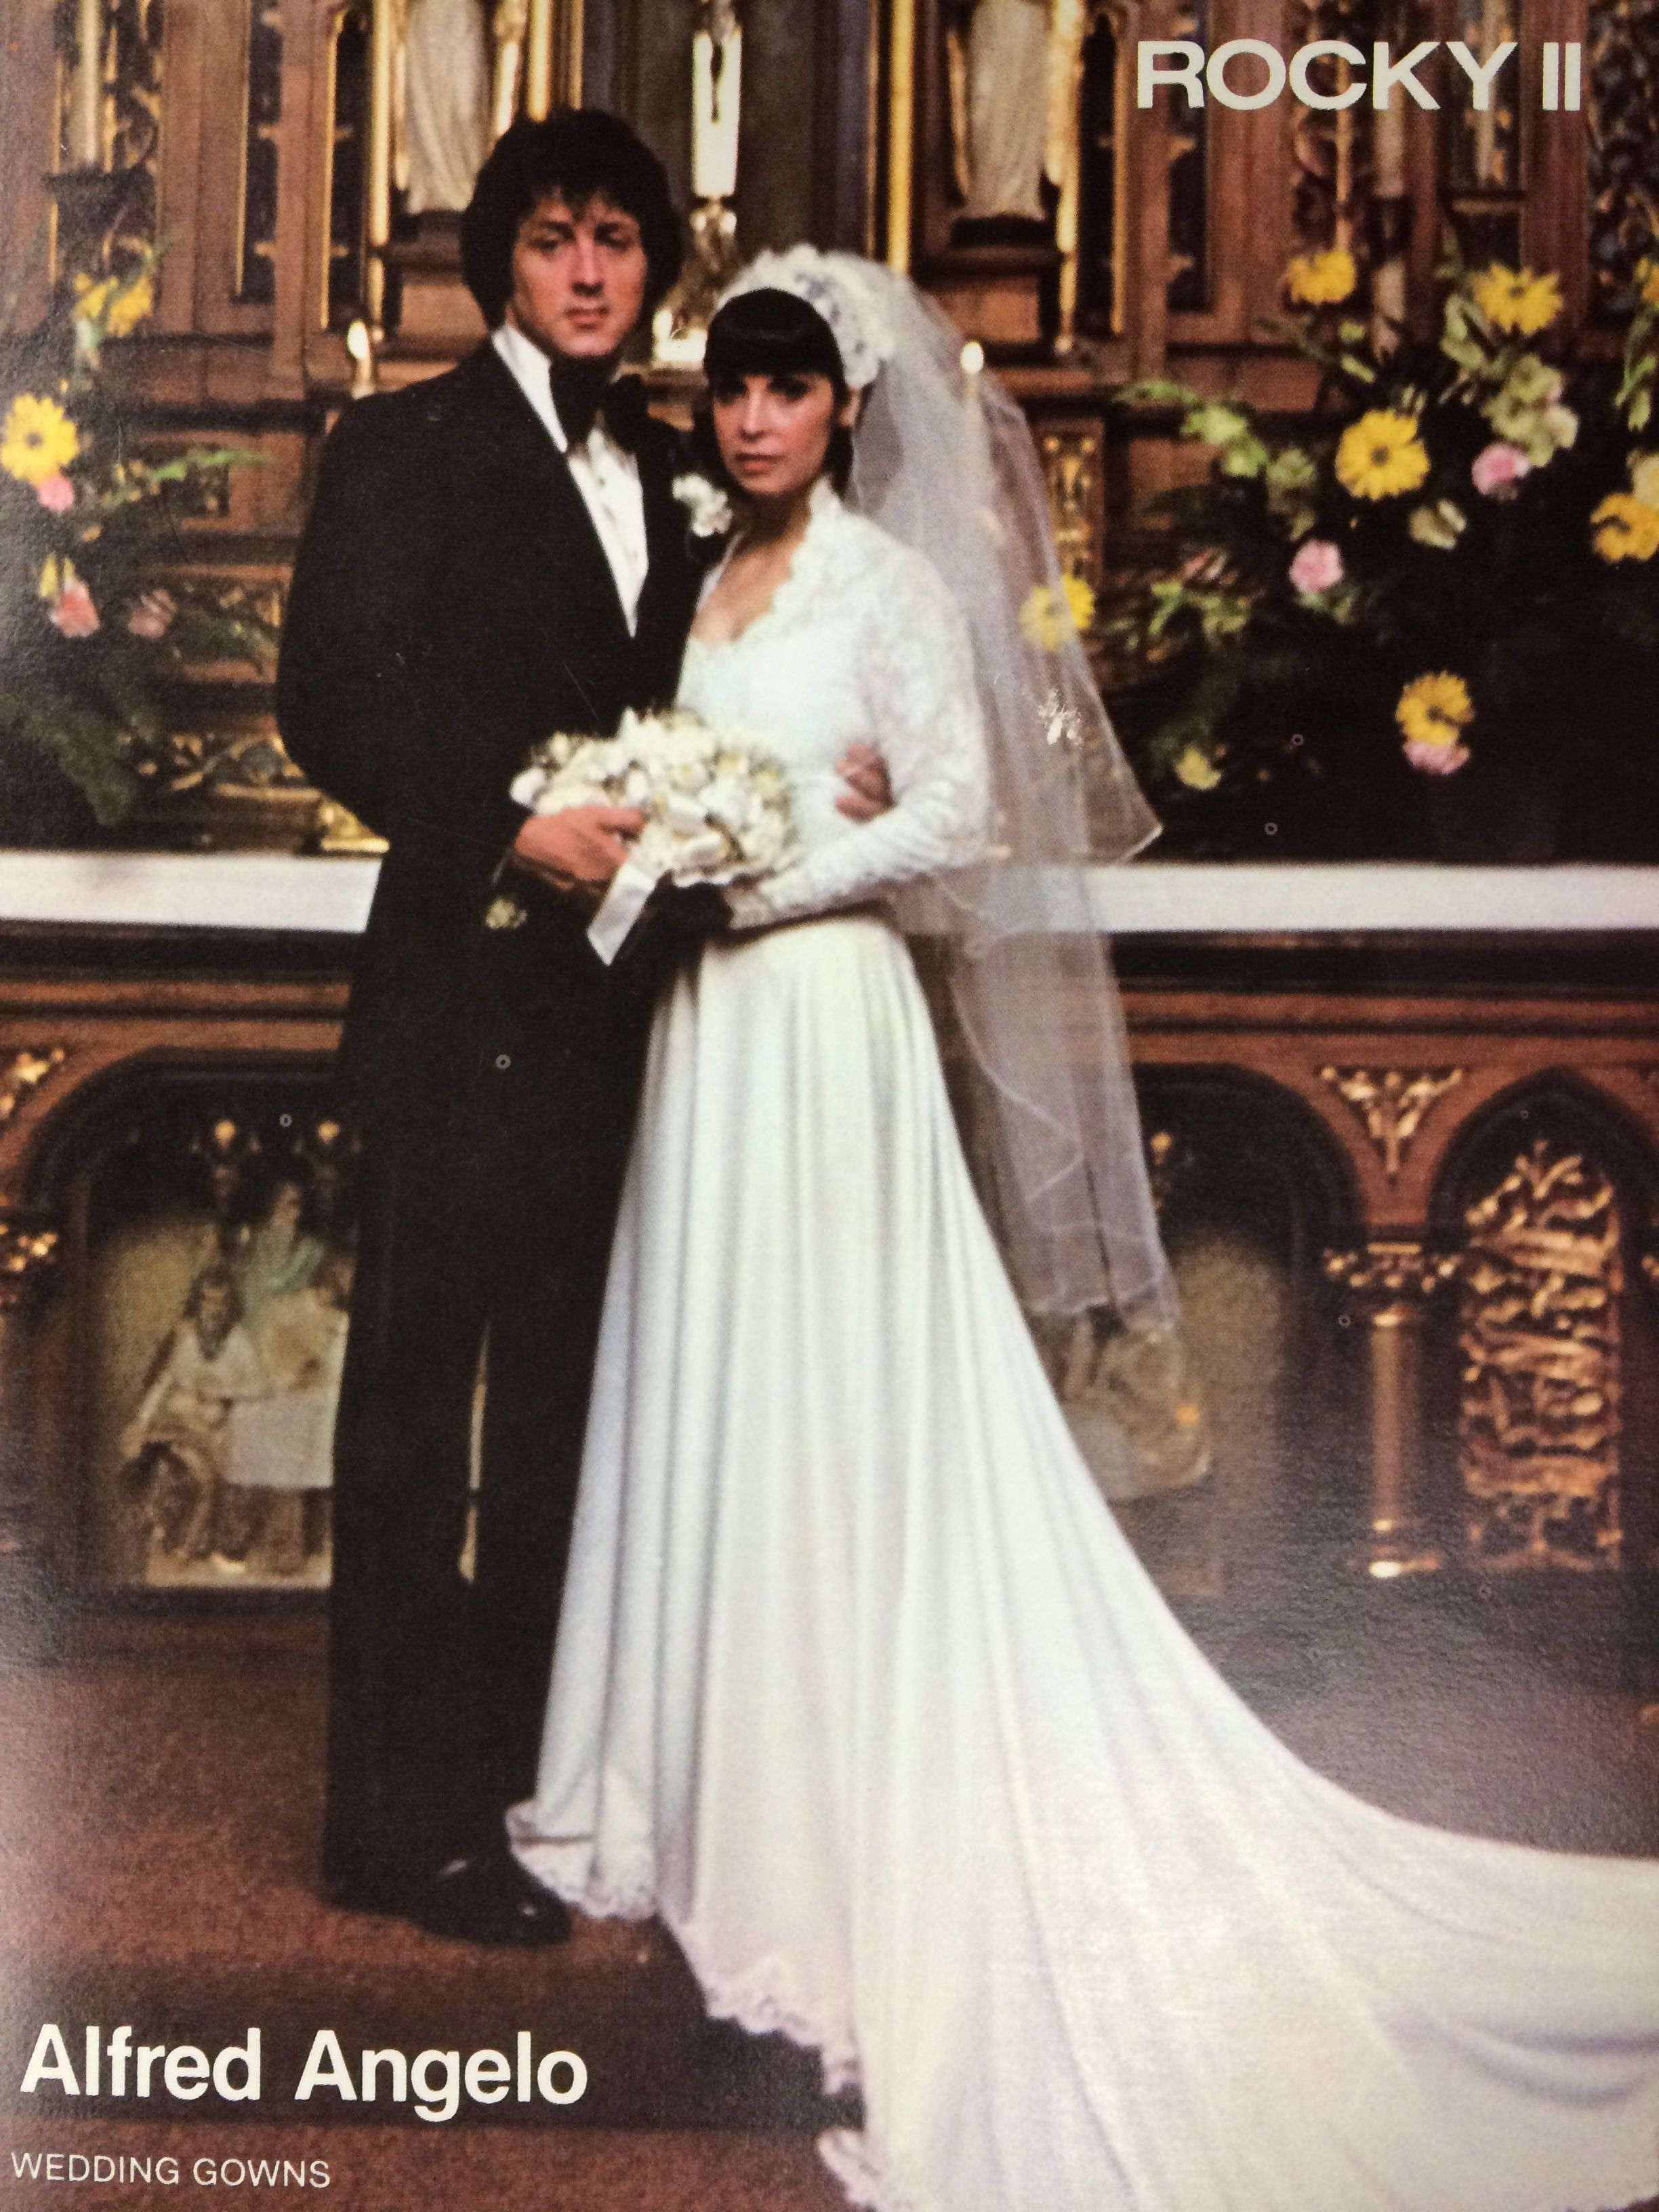 From 1979 Michele Piccione Designed The Wedding Gown Adrian Played By Talia Shire